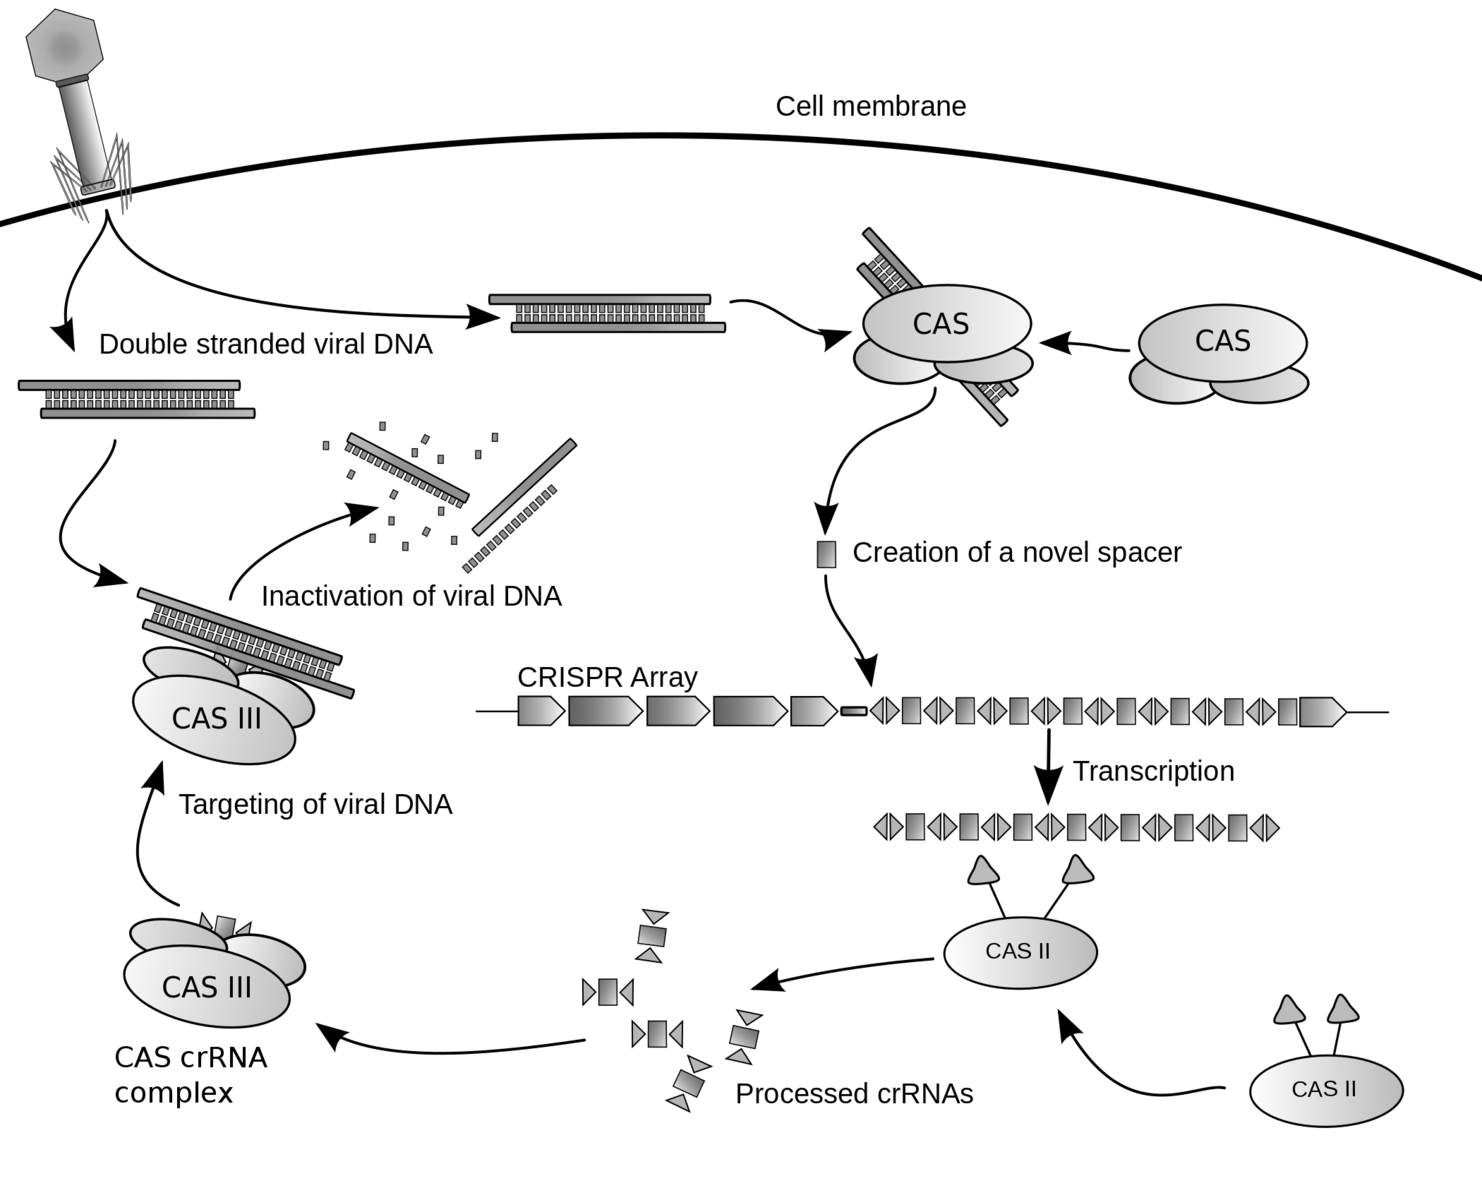 This diagram shows the complicated process known as CRISPR, which uses the Cas-9 protein to perceptively cut molecular strands. Scientists have been able to re-program Cas-9 and have used it to edit the genomes of mice, monkeys, and pigs.